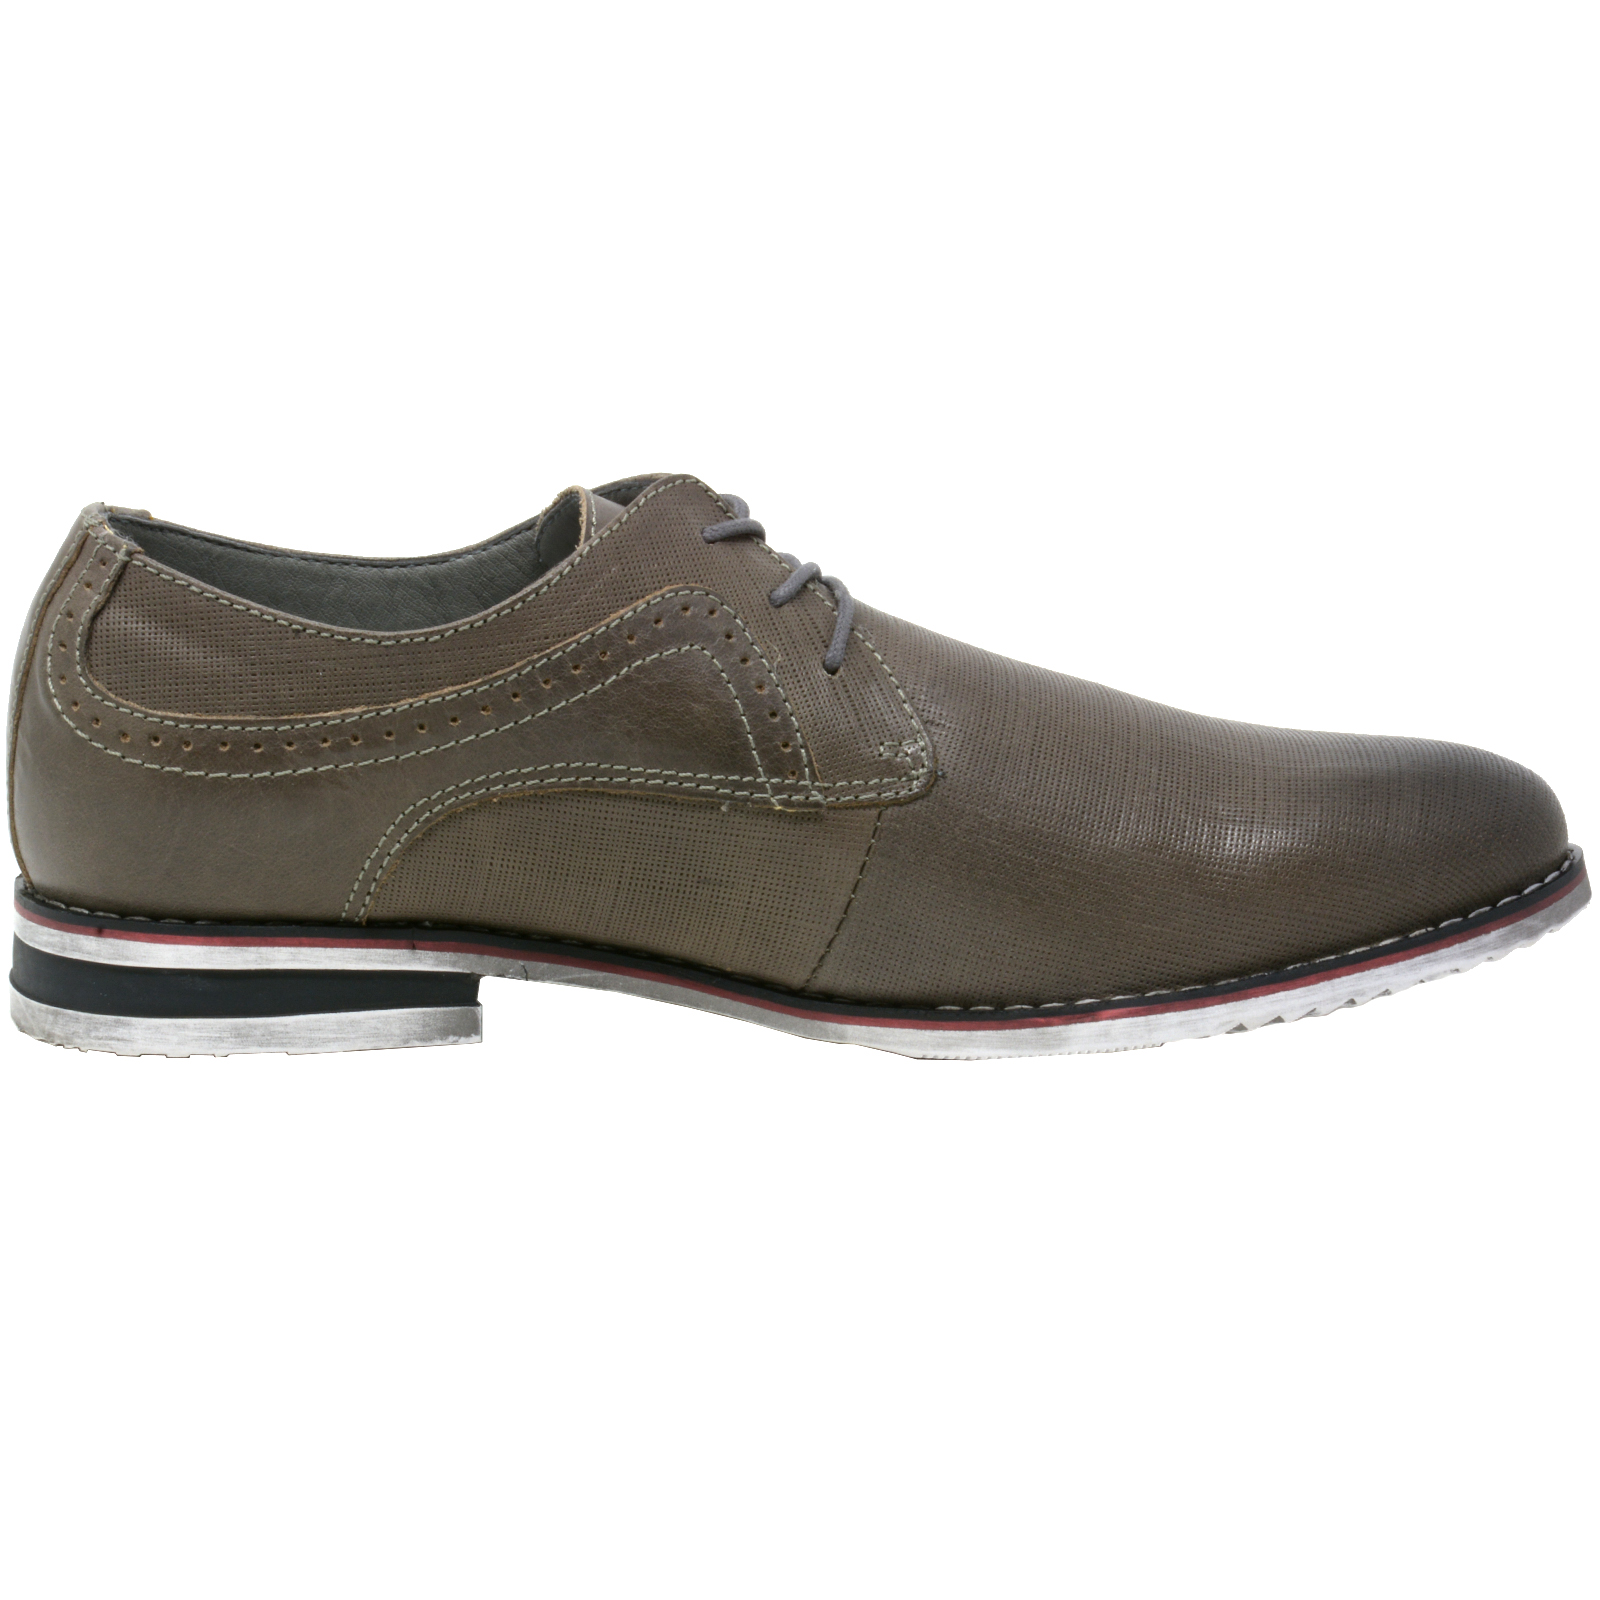 Double-Diamond-by-Alpine-Swiss-Mens-Saffiano-Leather-Lace-Up-Oxford-Dress-Shoes thumbnail 29